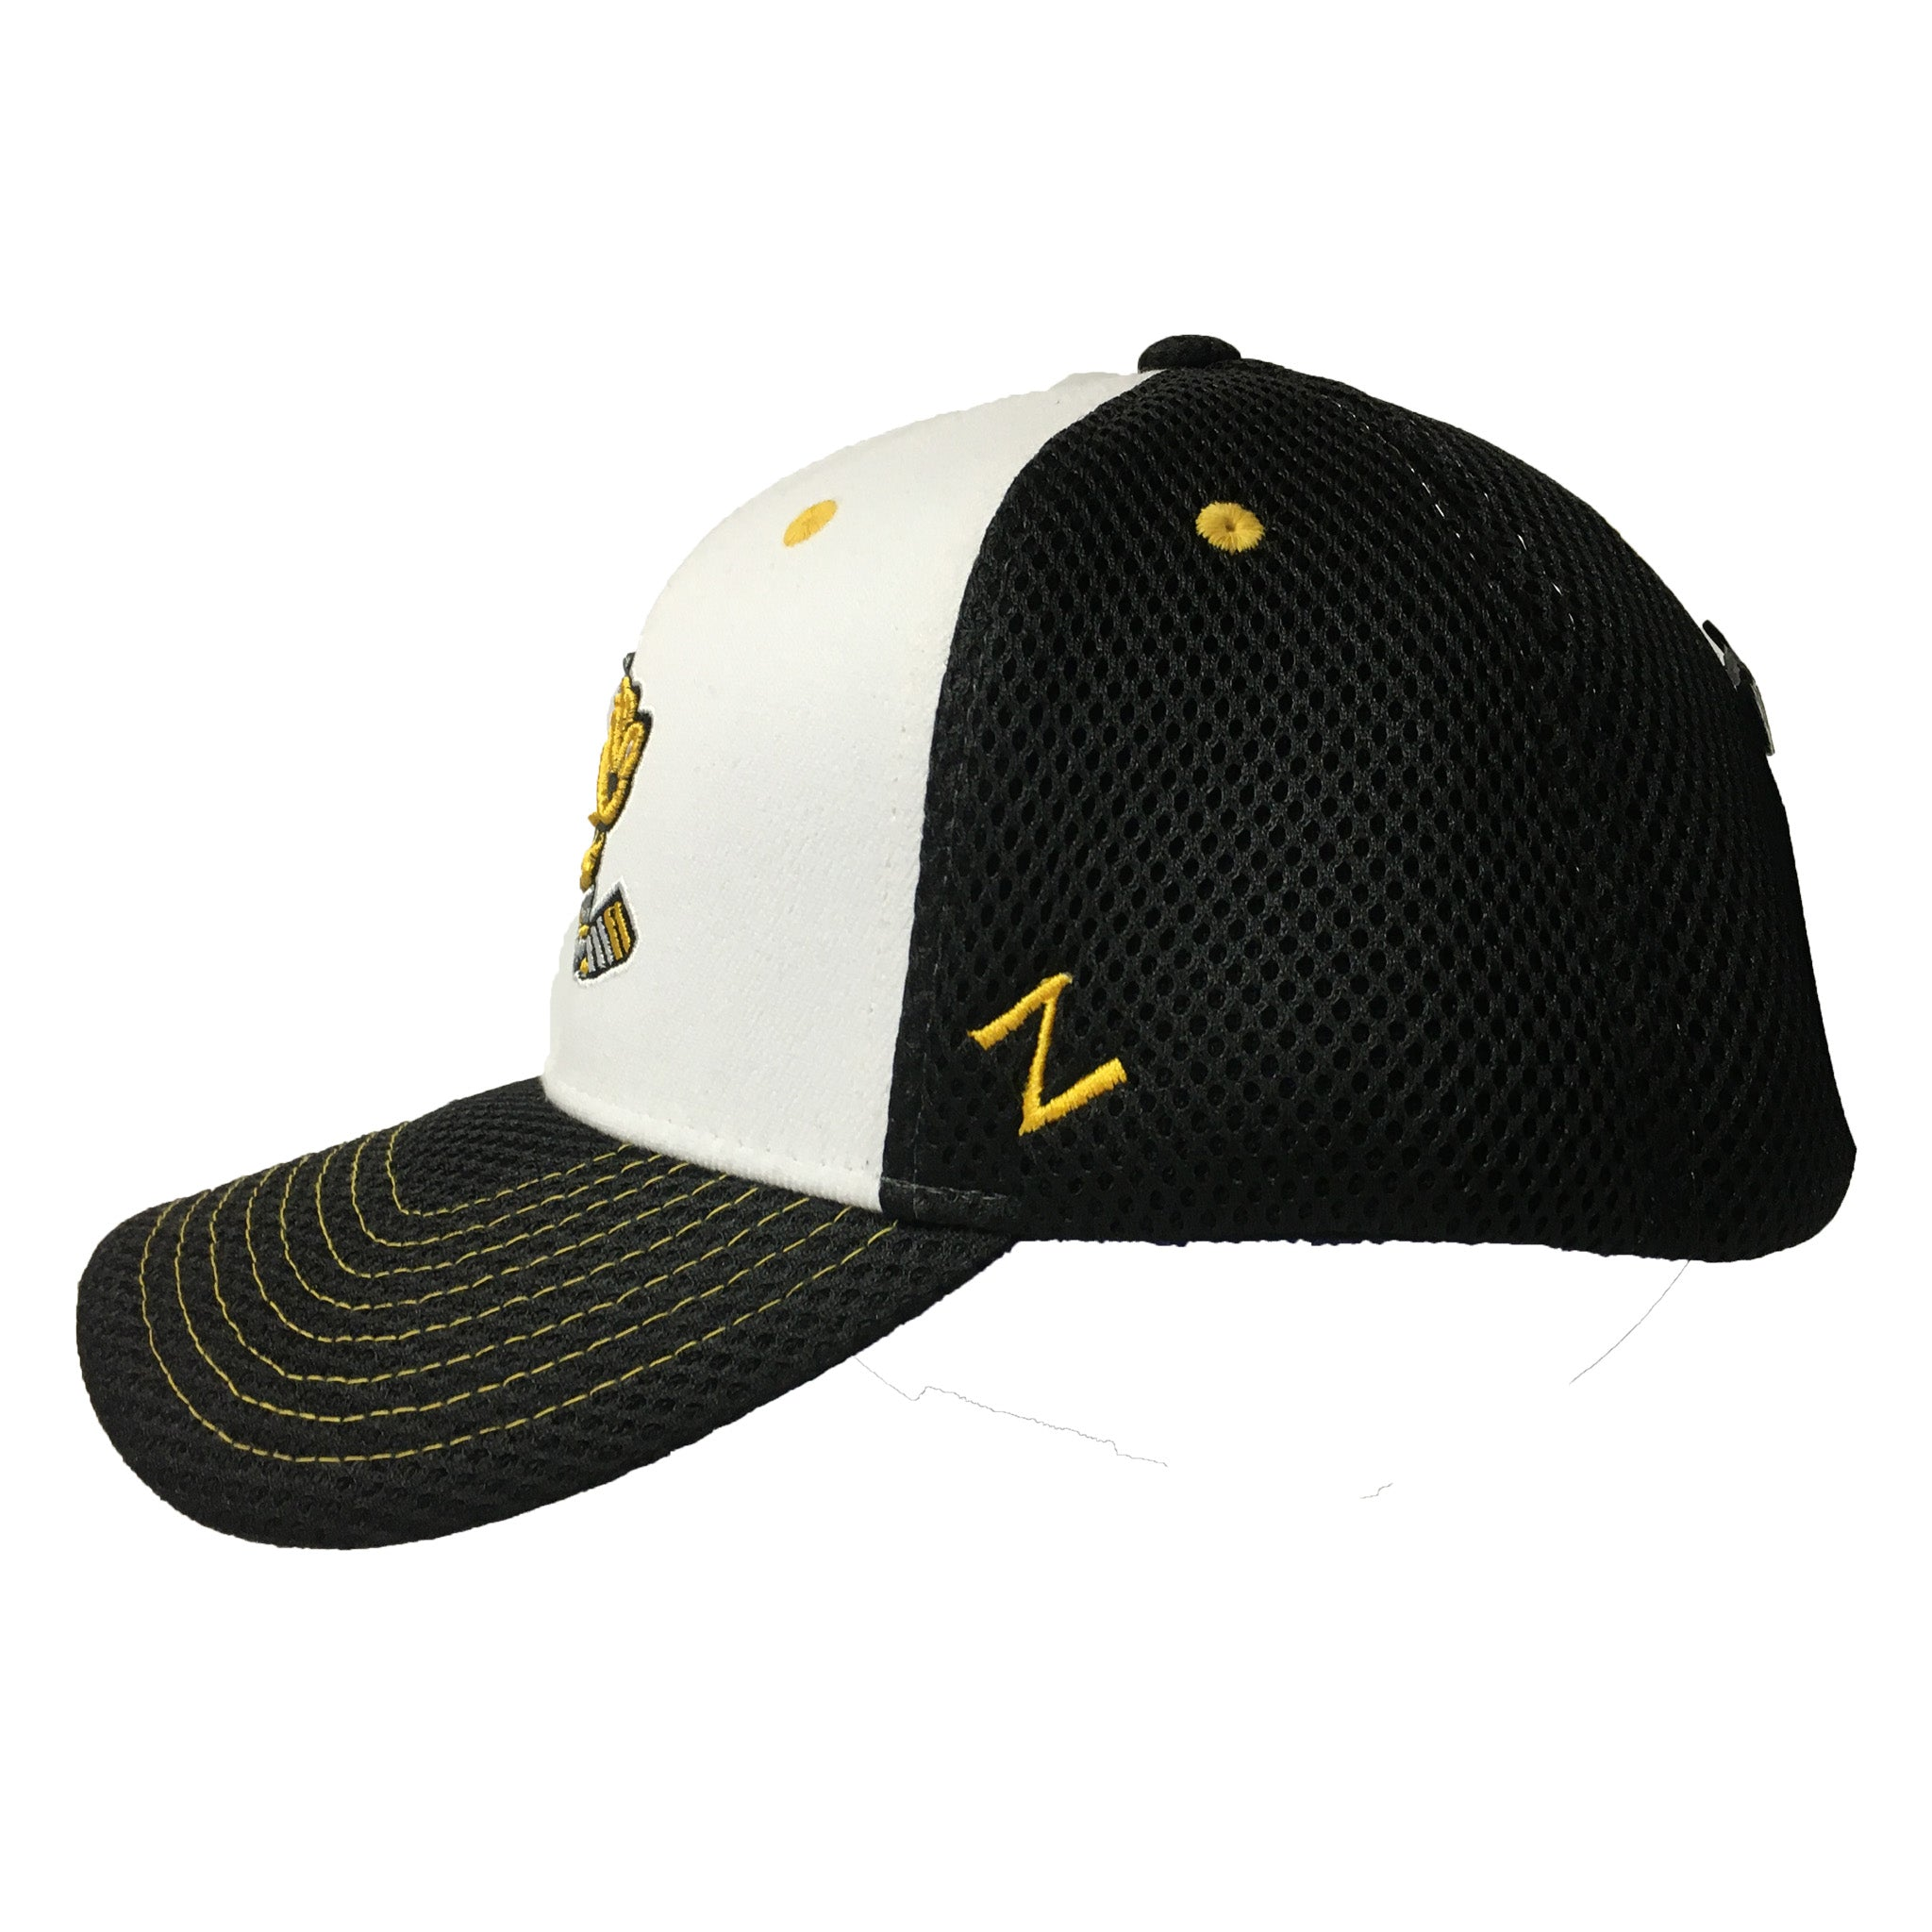 Zephyr Retstitch Fitted Sting Hat